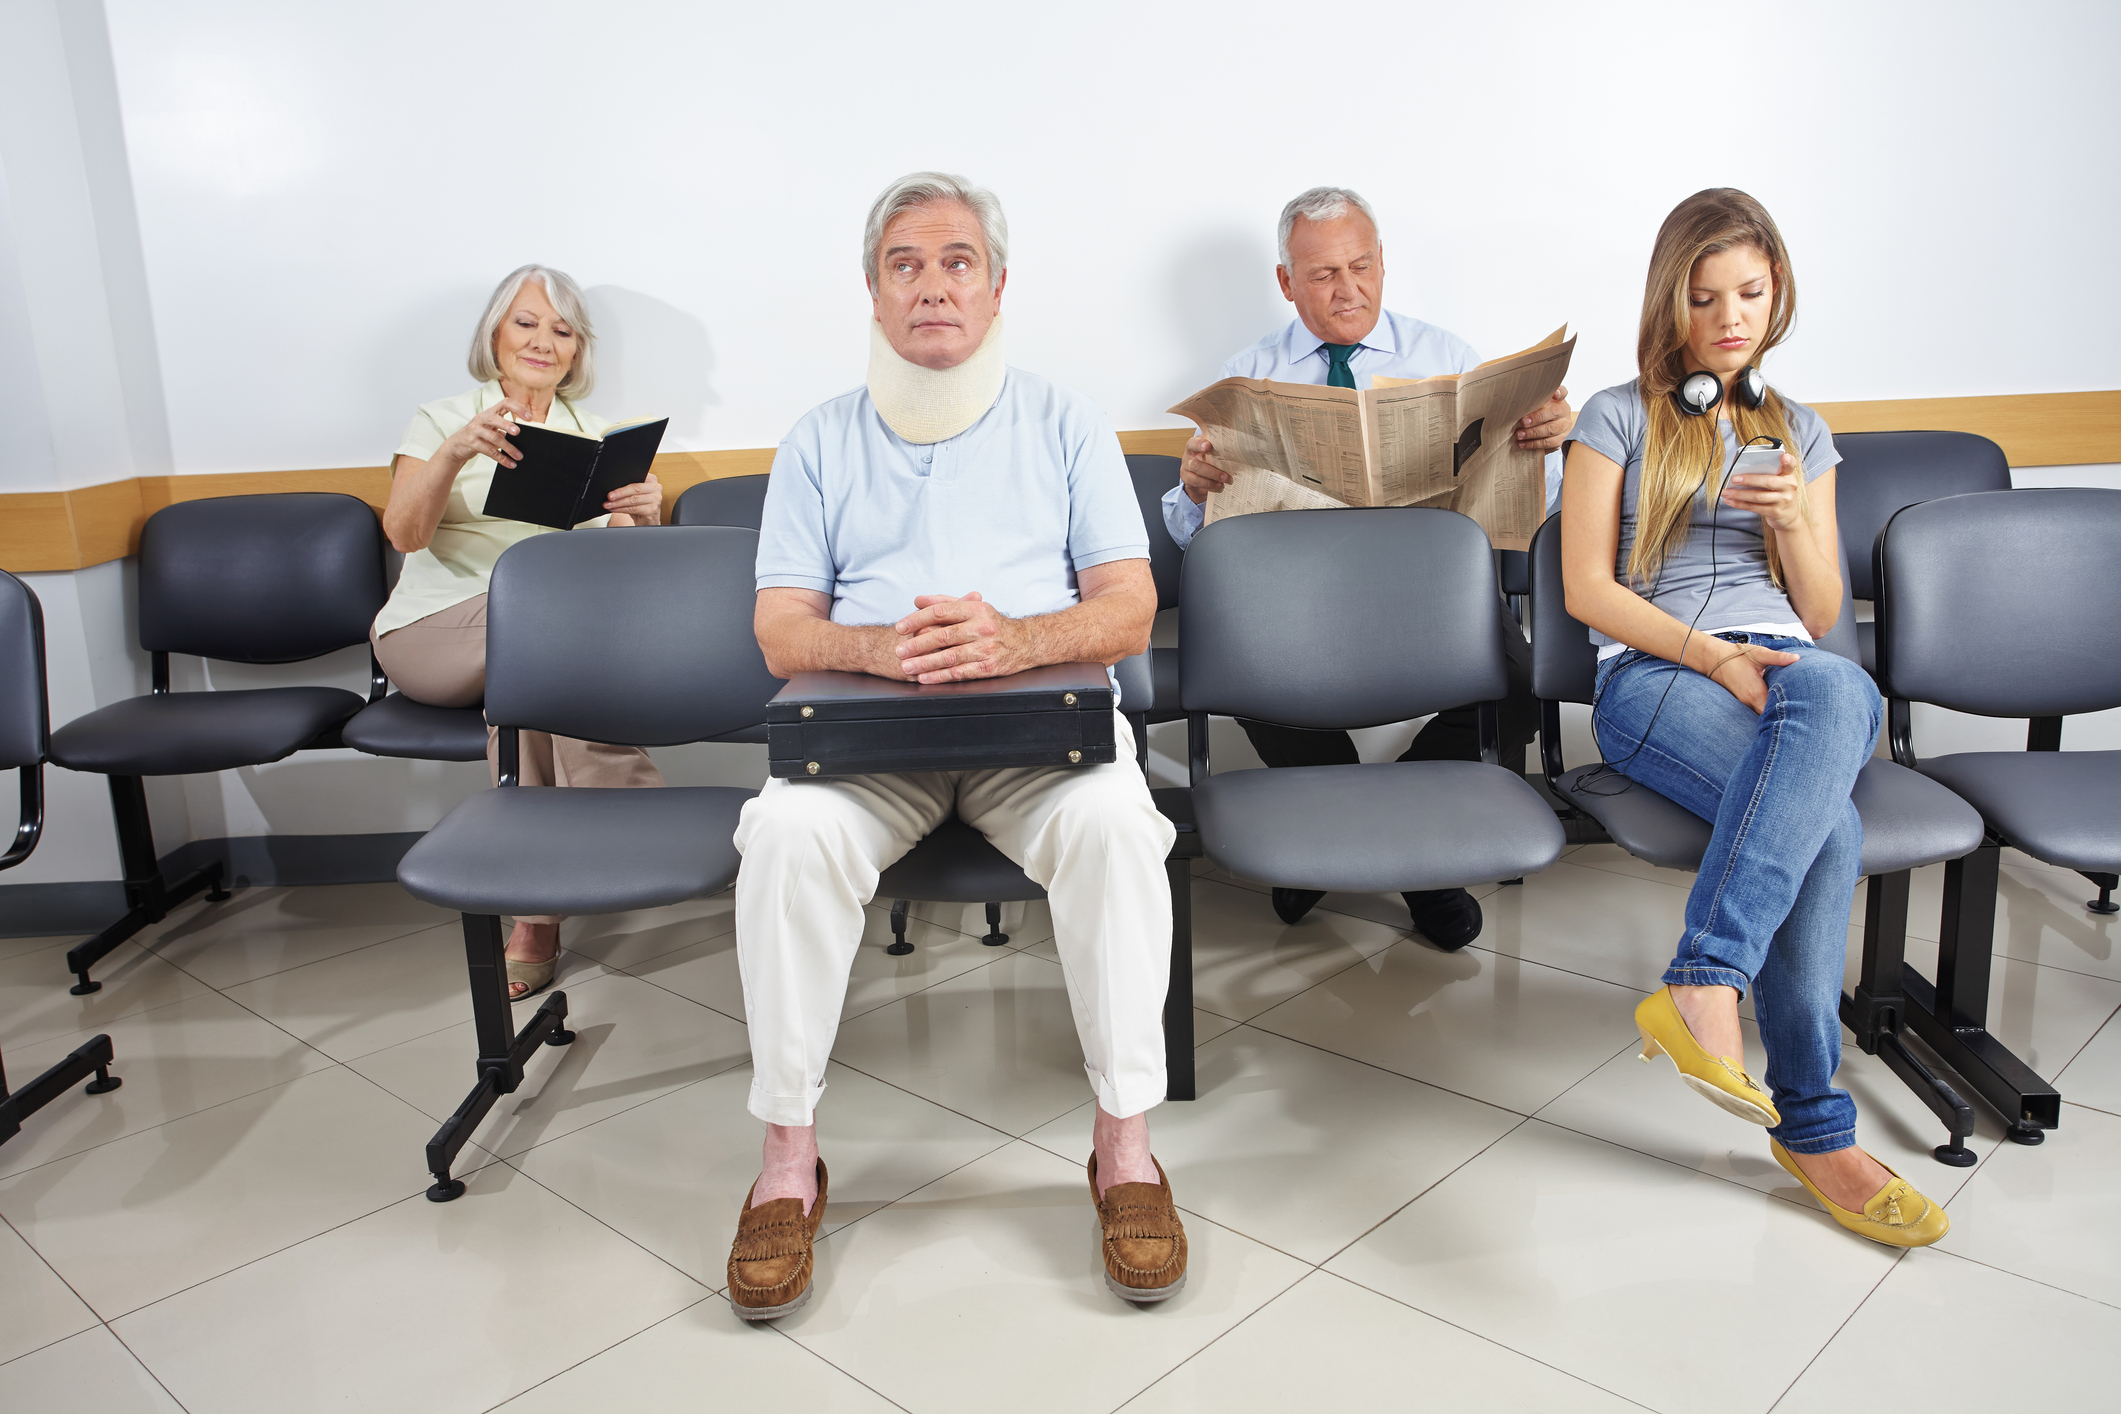 The Waiting Room: Where Suffering Begins - Susan E. Mazer